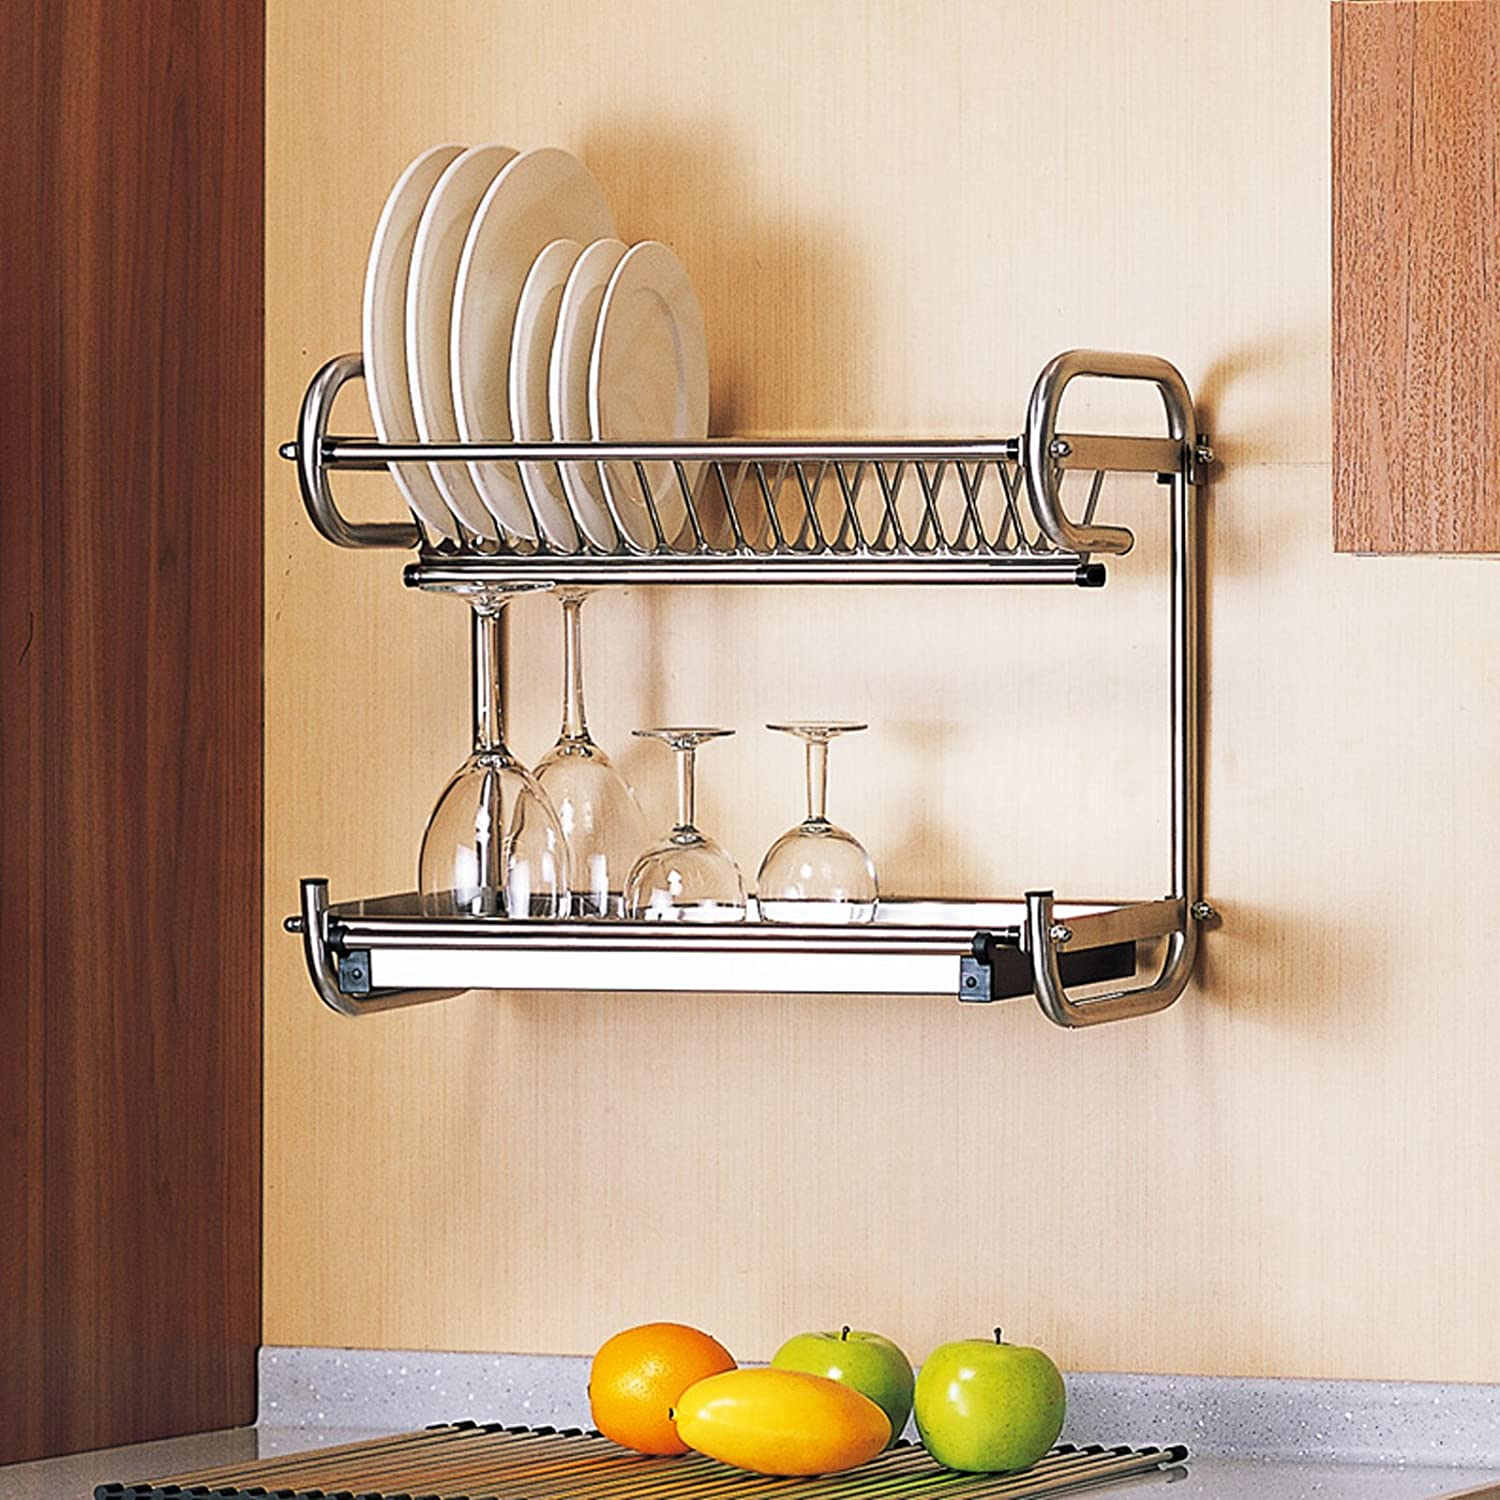 Amazon.com Probrico Wall Mounted Dish Drainer Rack Stainless Steel 23.6 inch Dish Drying Rack Plates Bowls Storage Organizer Holder Kitchen u0026 Dining : plate rack for wall - pezcame.com